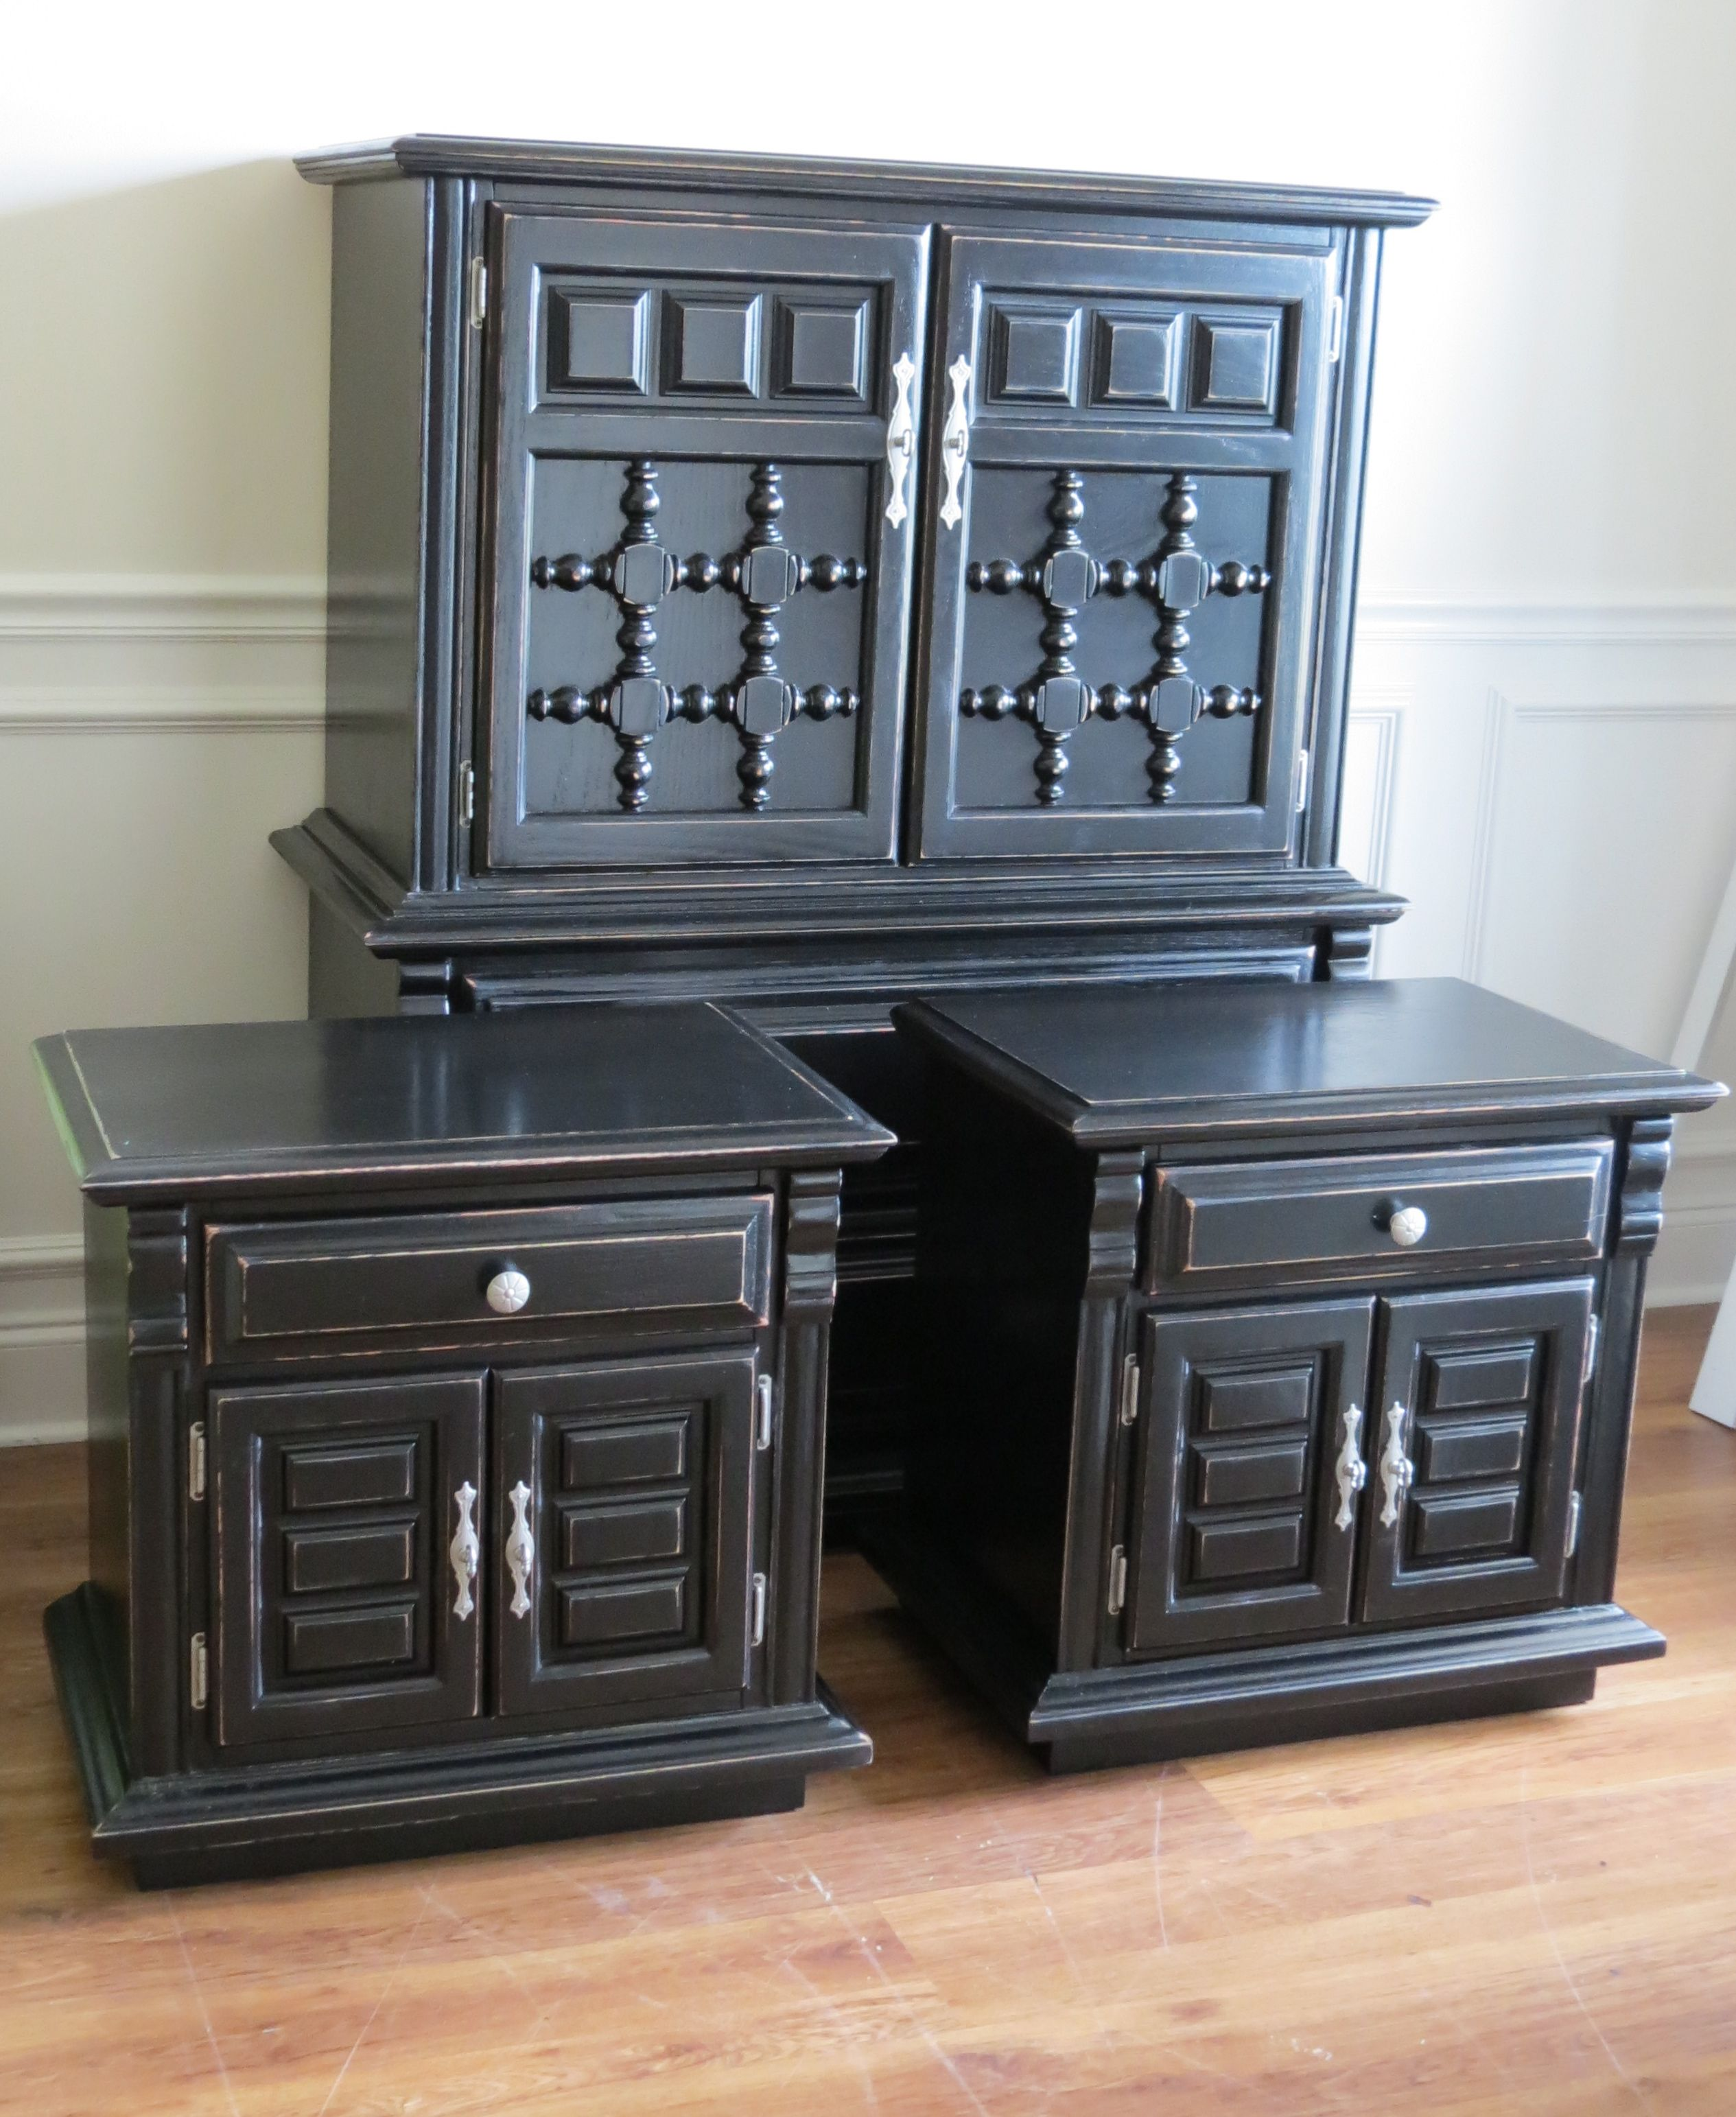 Bedroom Furniture Yard Sale: Black Painted Furniture, This Is How You Make Those Clunky